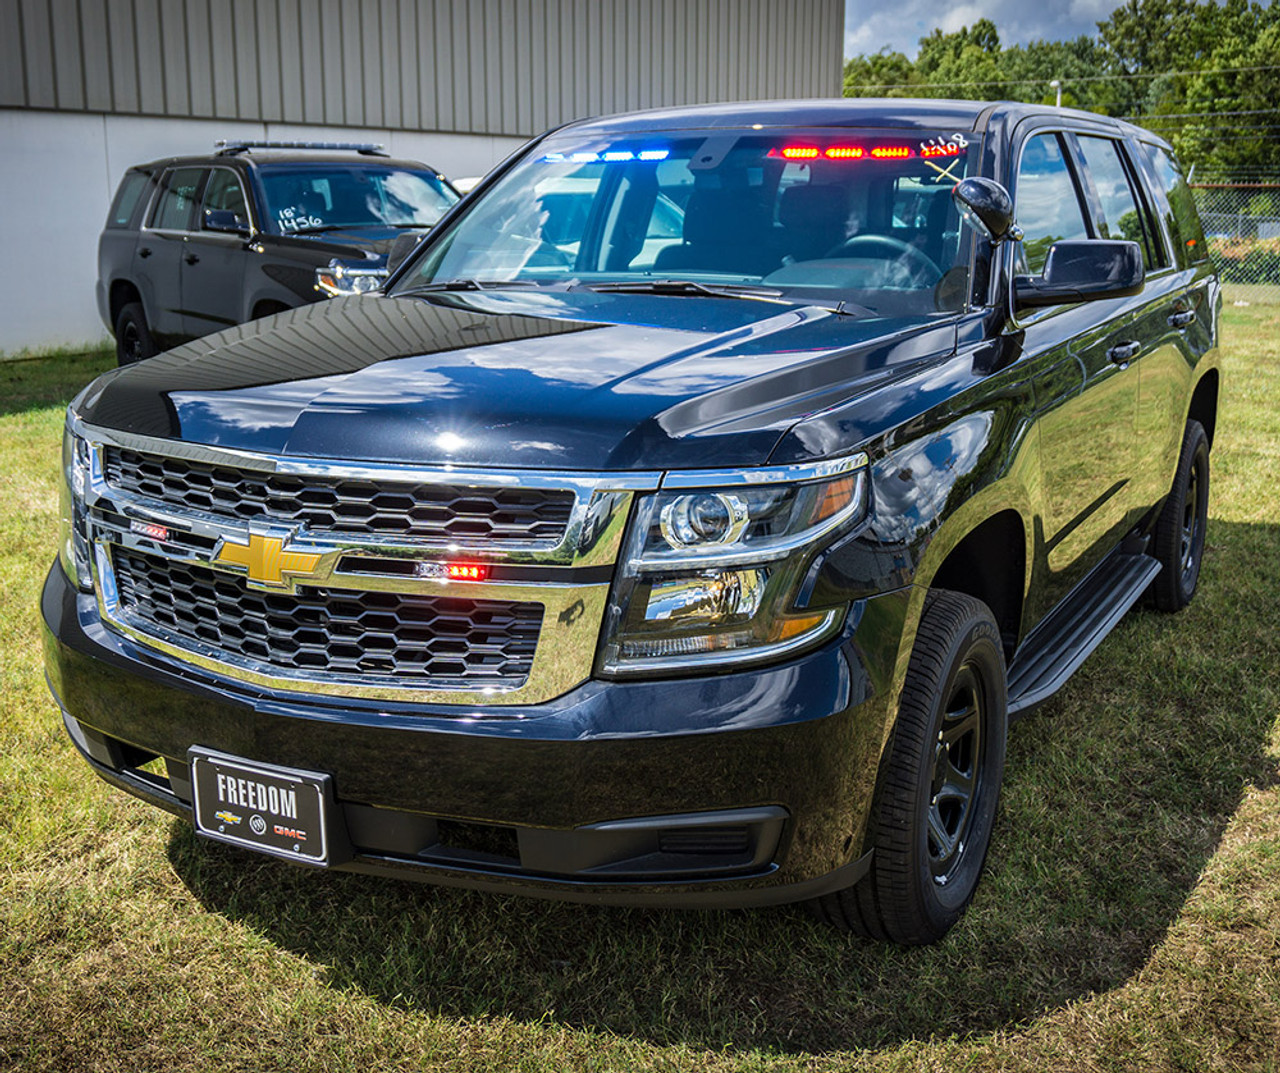 2019 Chevy Tahoe >> New 2019 Black Chevy Tahoe Police Package V8 2wd Ready To Be Built As A Slick Top Admin Package Choose Any Color Led Lights Delivery